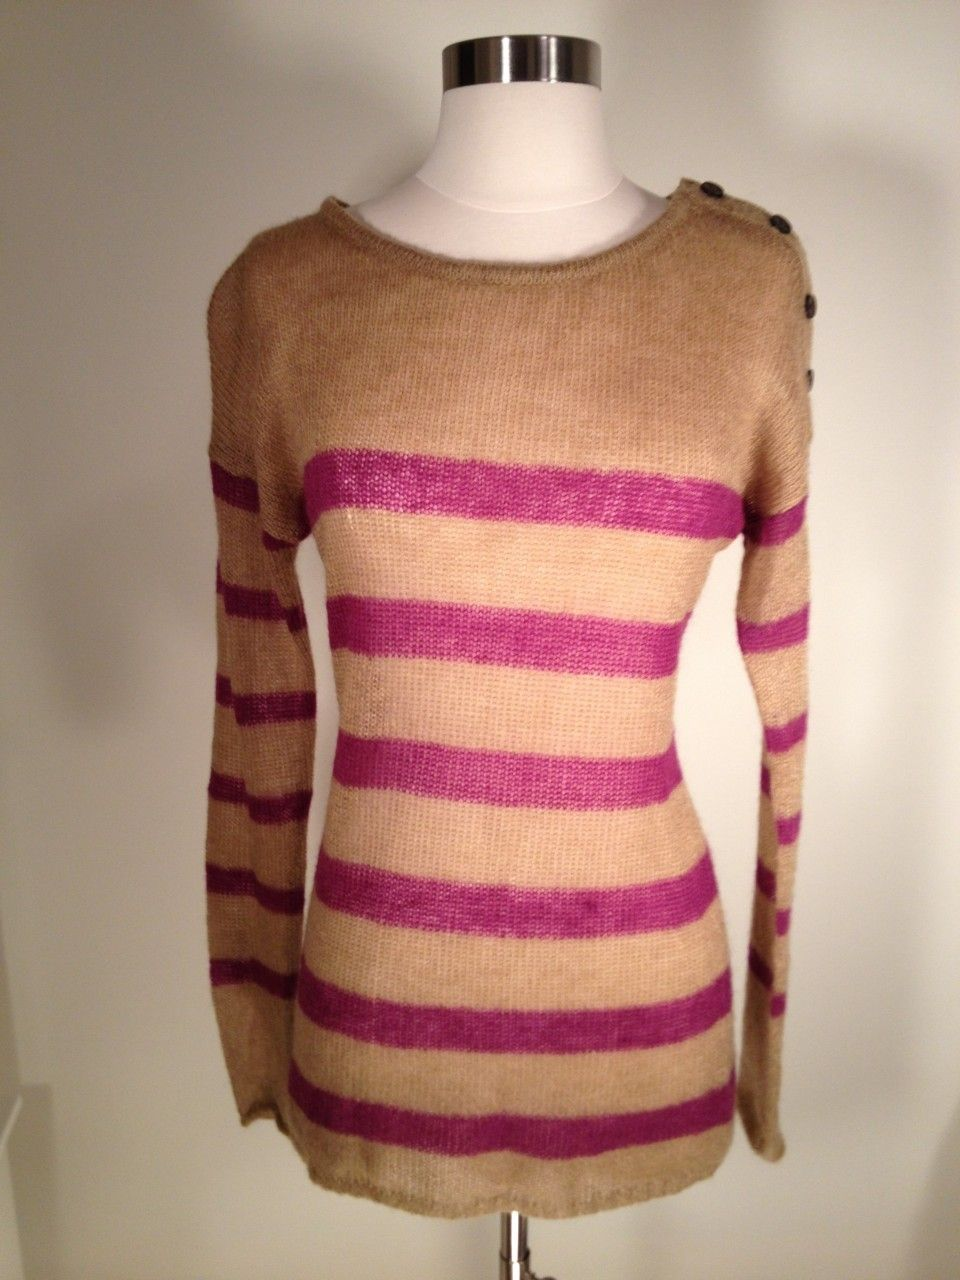 Lynnique Boutique Online Thrift Store Finds - Ann Taylor LOFT Striped Sweater, NEW, M, $24.99 (http://lynniqueboutique.com/ann-taylor-loft-striped-sweater-new-m/)  FREE SHIPPING!